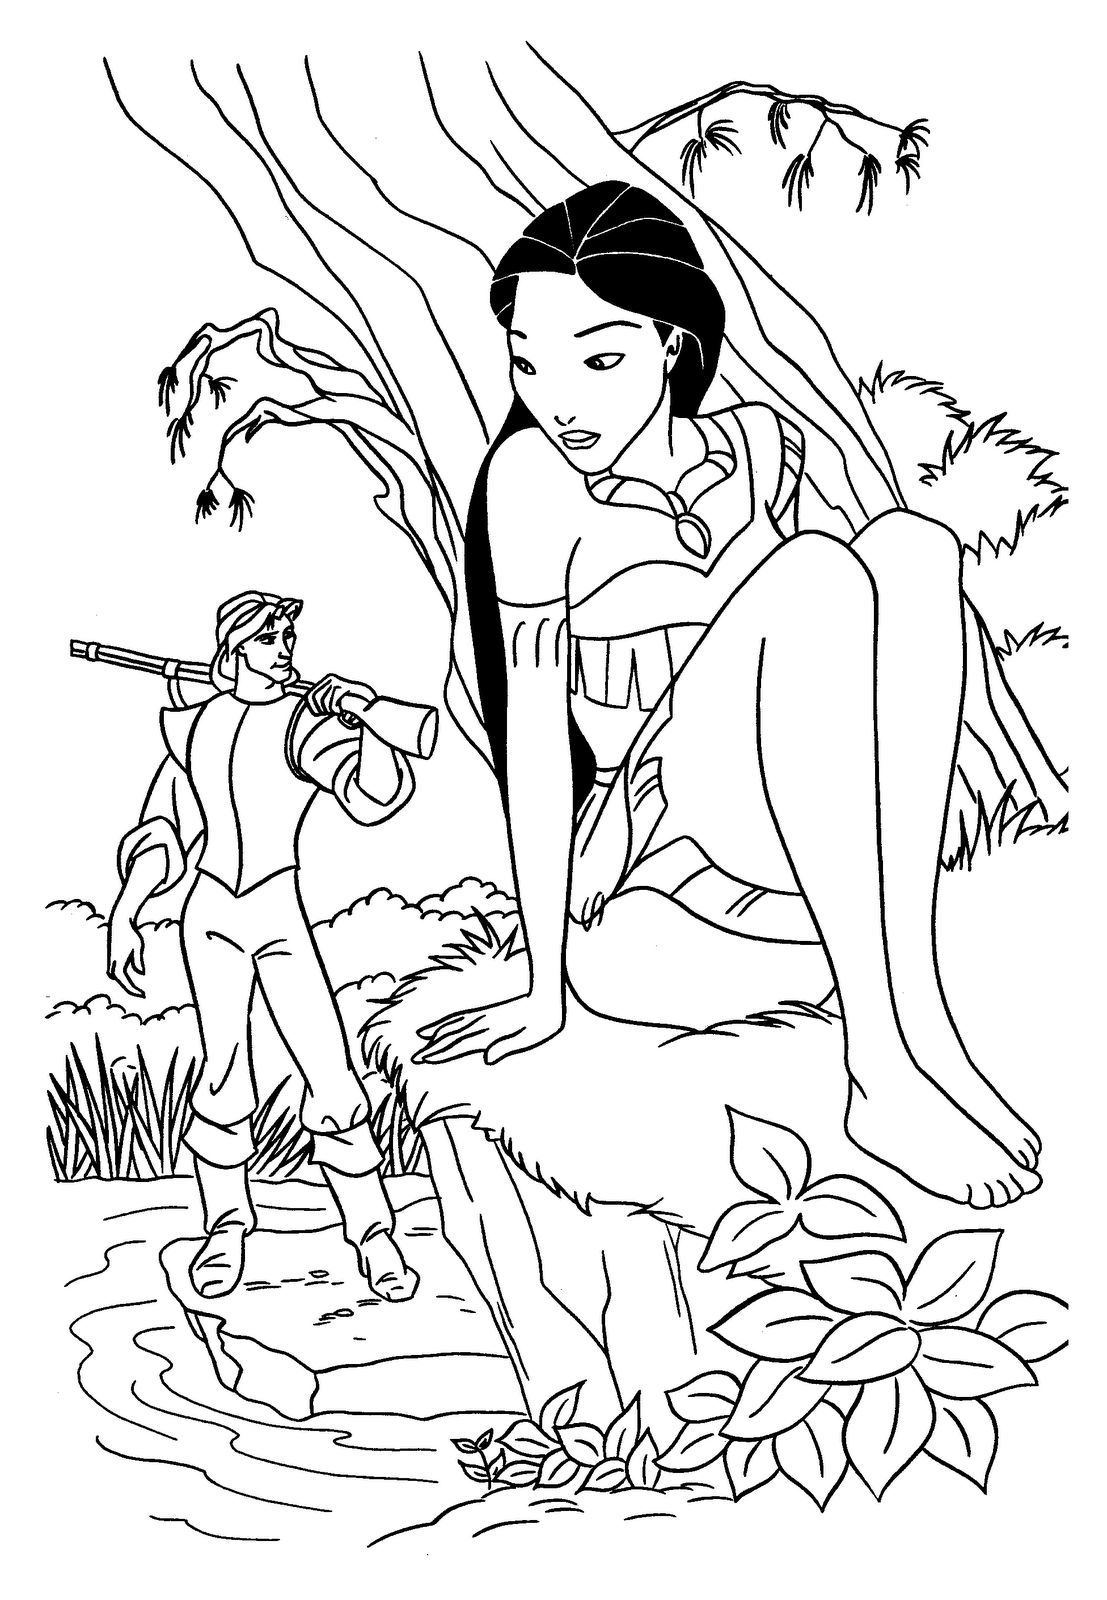 Free Coloring Pages 1-20 TLSBooks - free printable coloring pictures